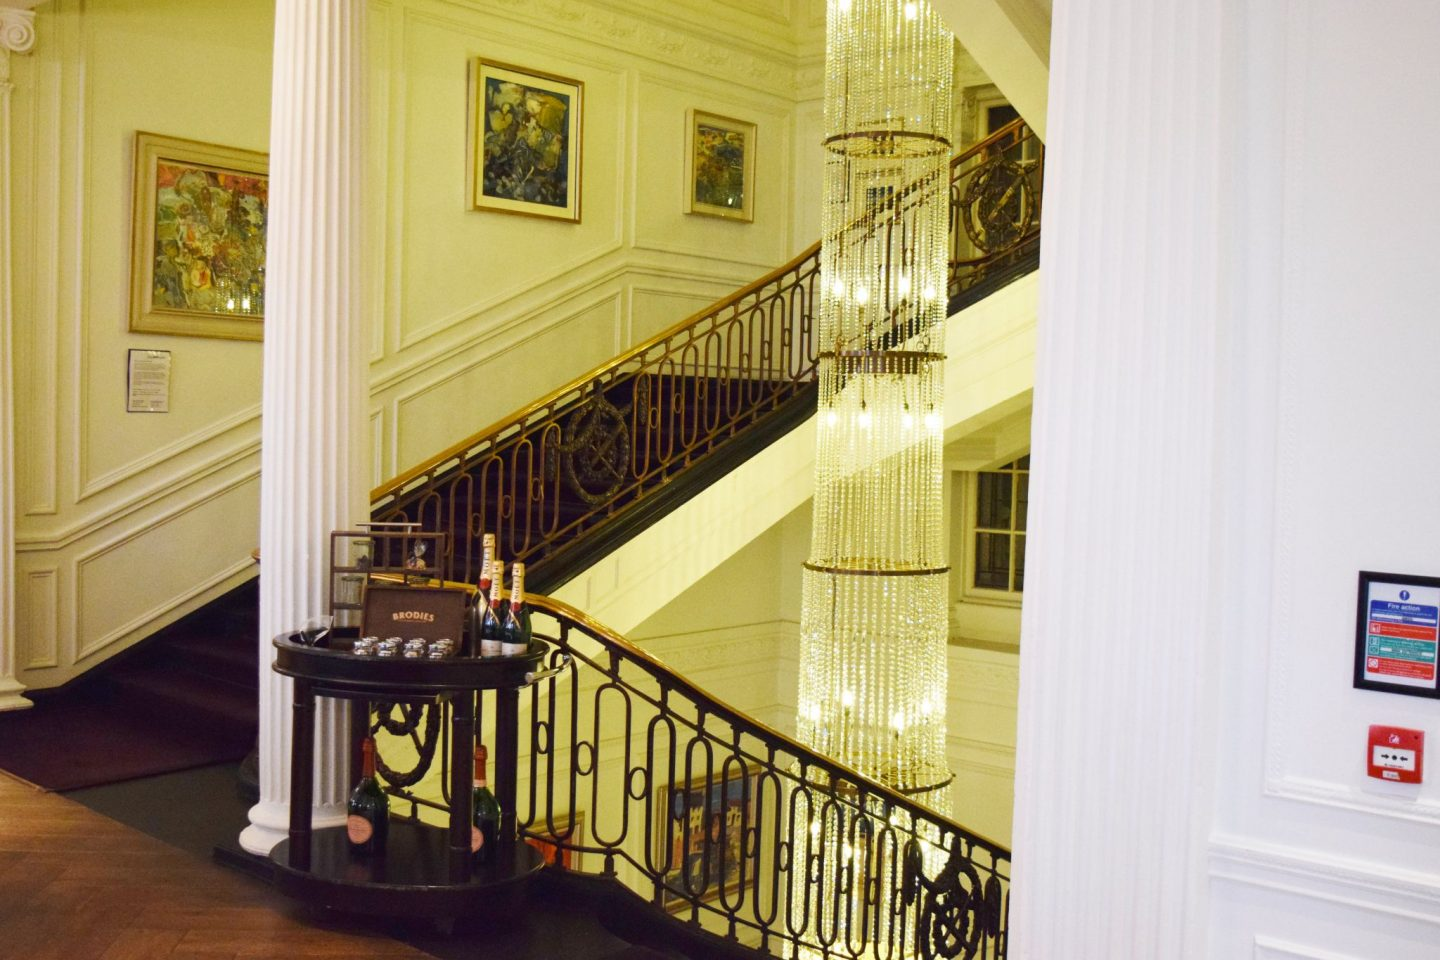 Blythswood Square Hotel Glasgow staircase